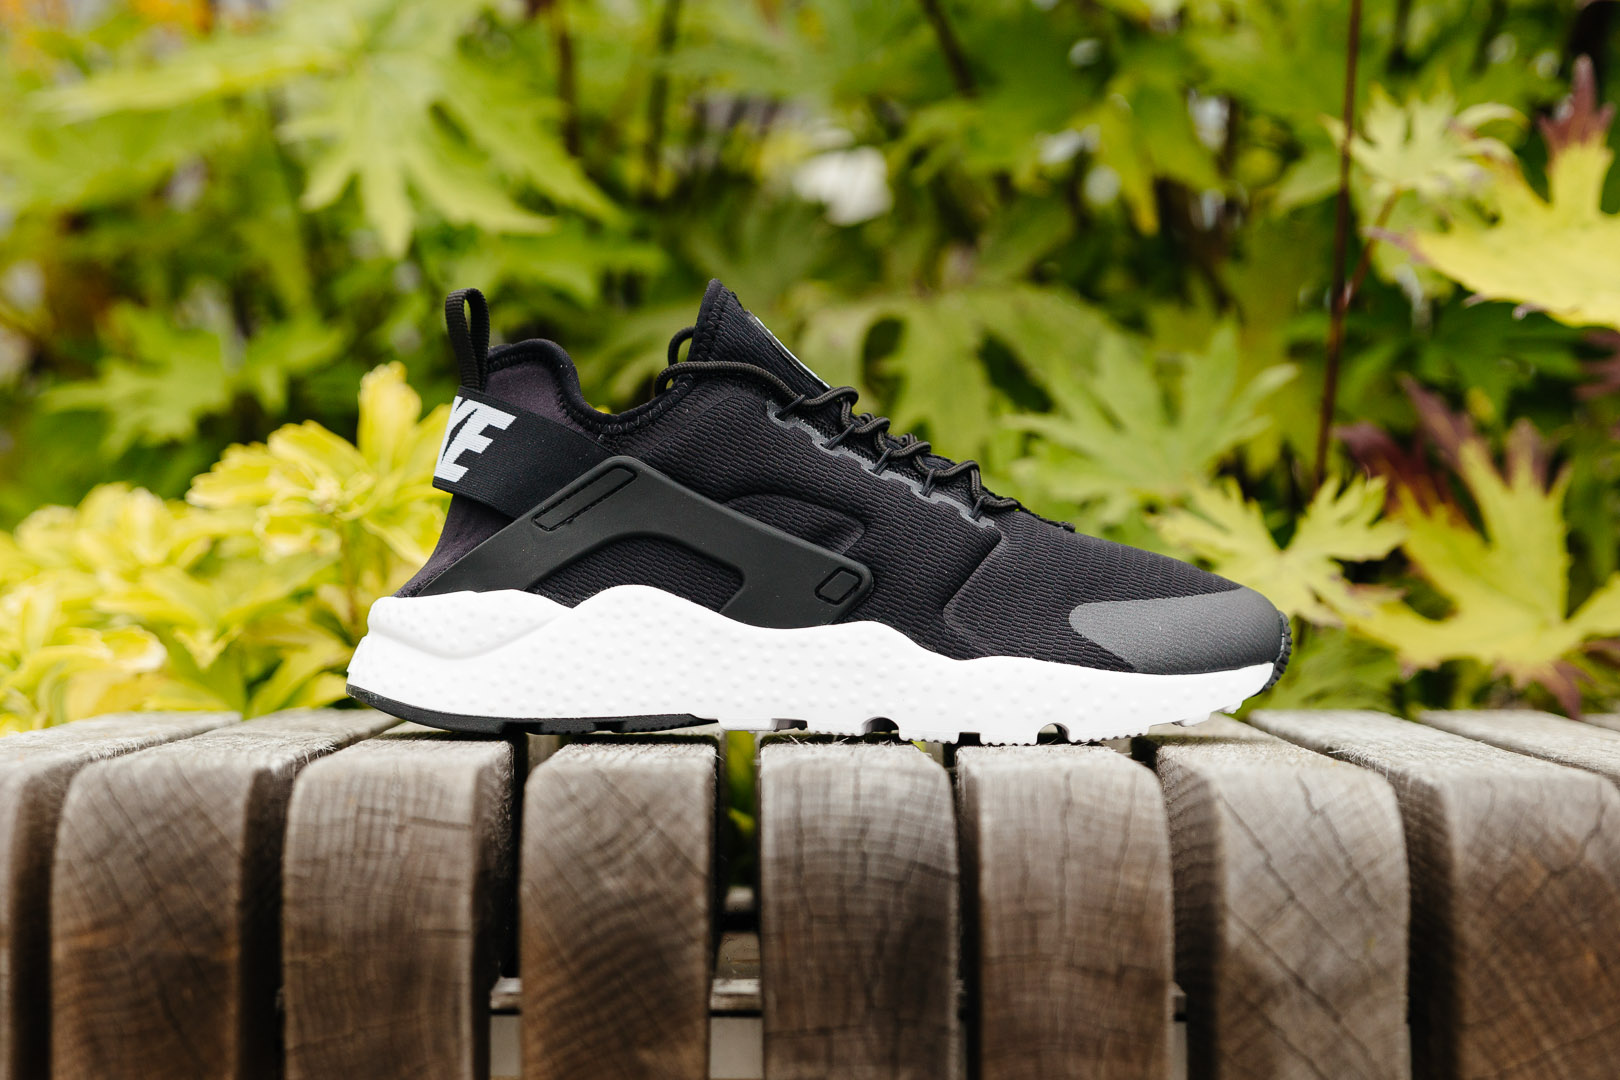 official photos 67215 4da16 NIKE-AIR-HUARACHE-RUN-ULTRA-FEATURE-1965-INS-